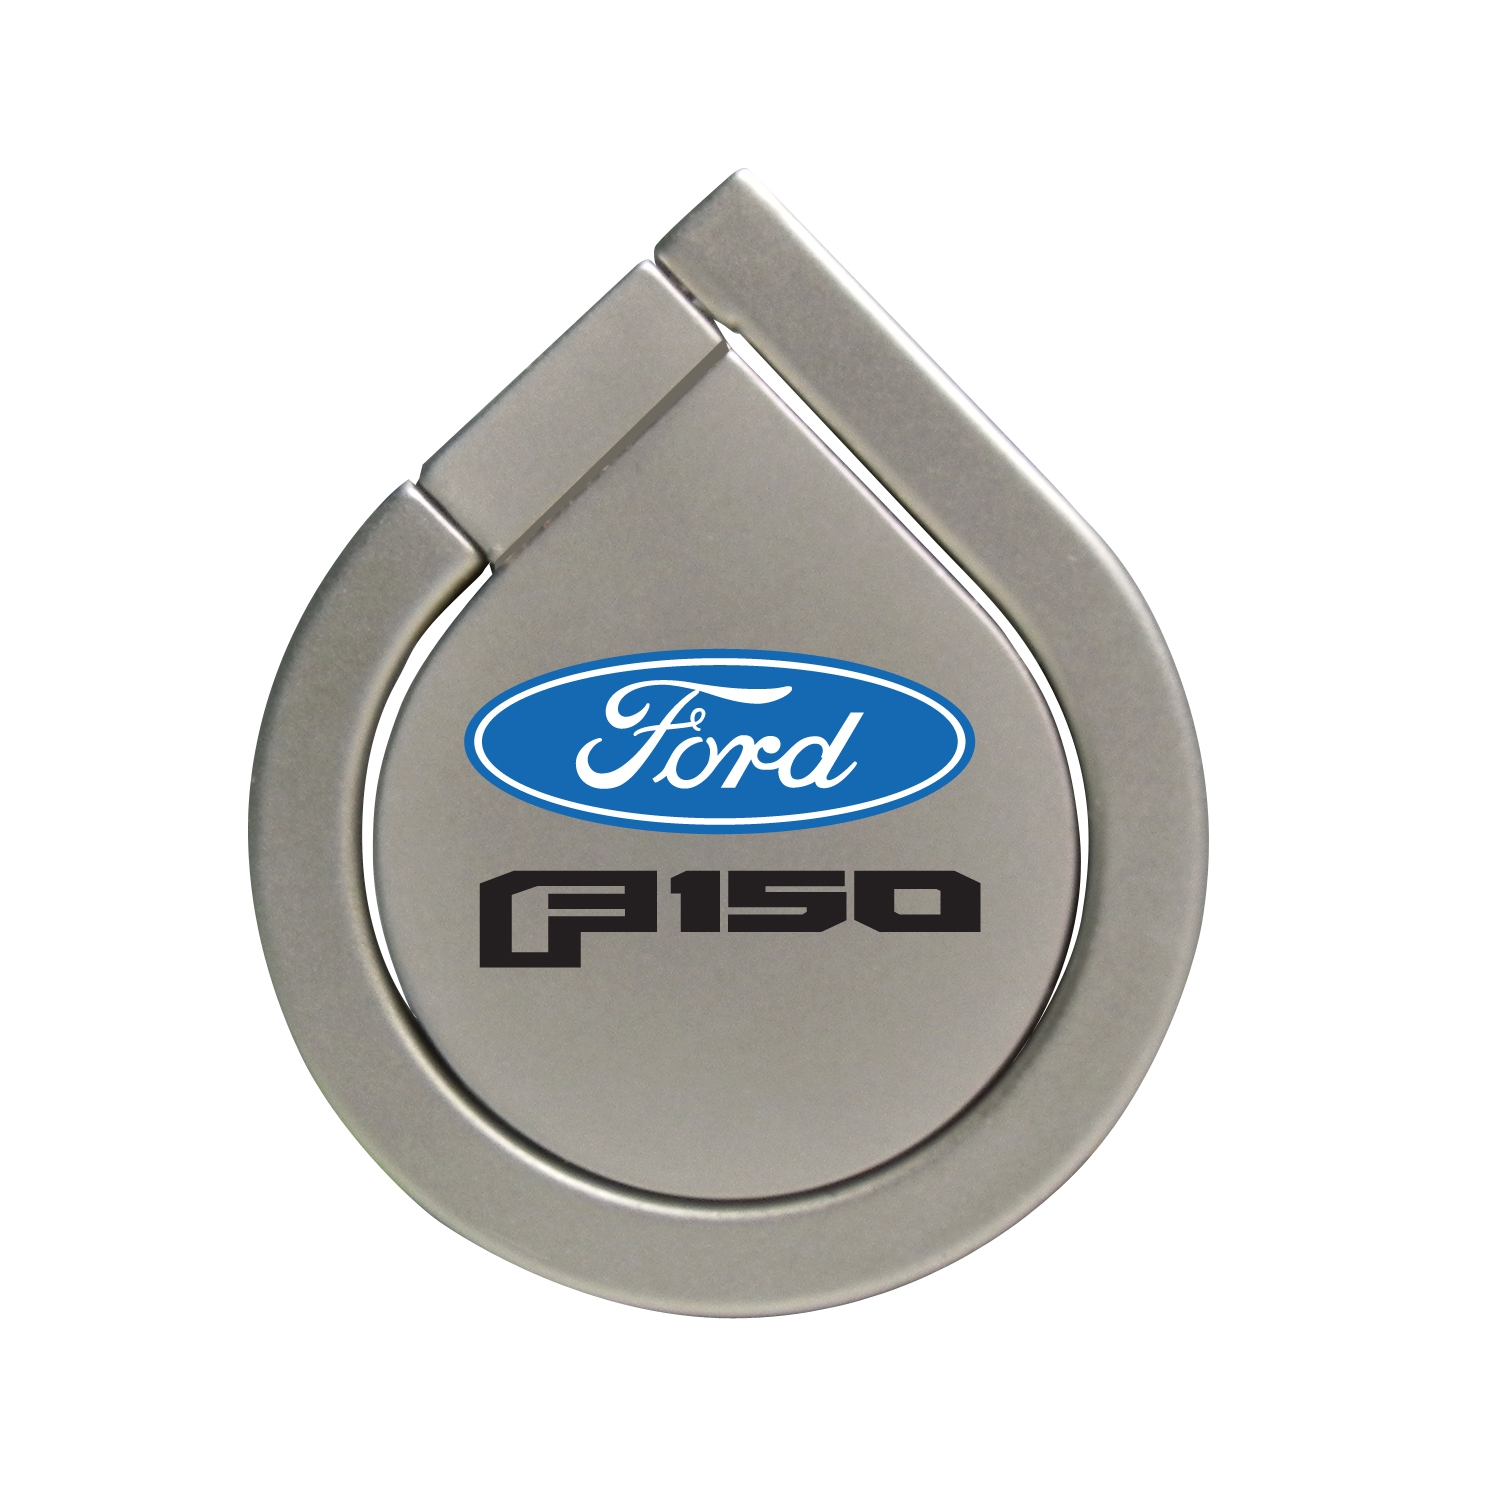 Ford F150 2015 Silver 360 Degree Rotation Finger Ring Holder for Cell Phone